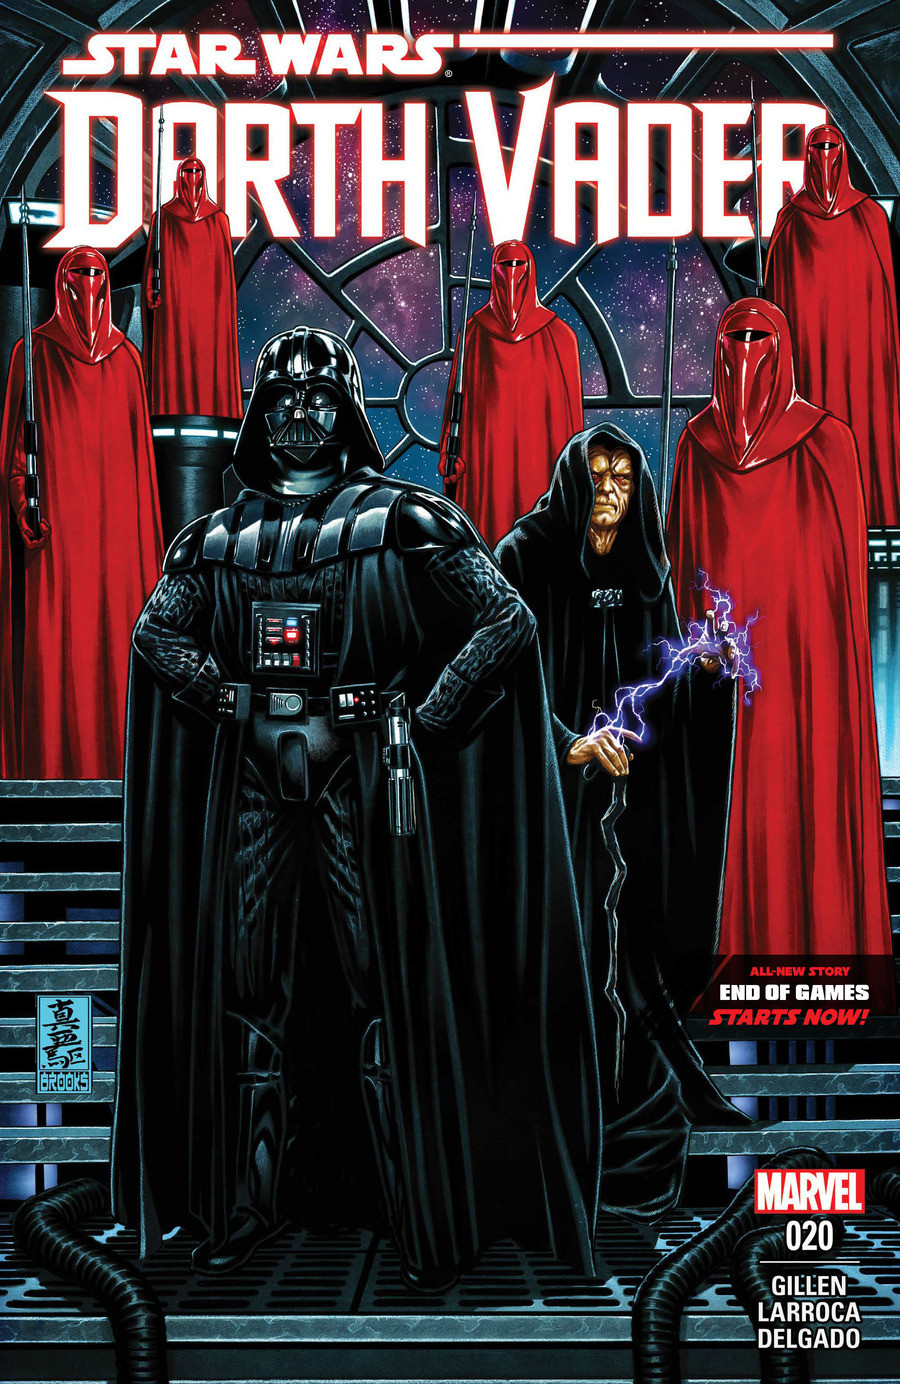 Star Wars Darth Vader issue 20. The final part of the Shu Torun war story arc Click the links for the first 3 issues of this comic, and the mentions list mentio